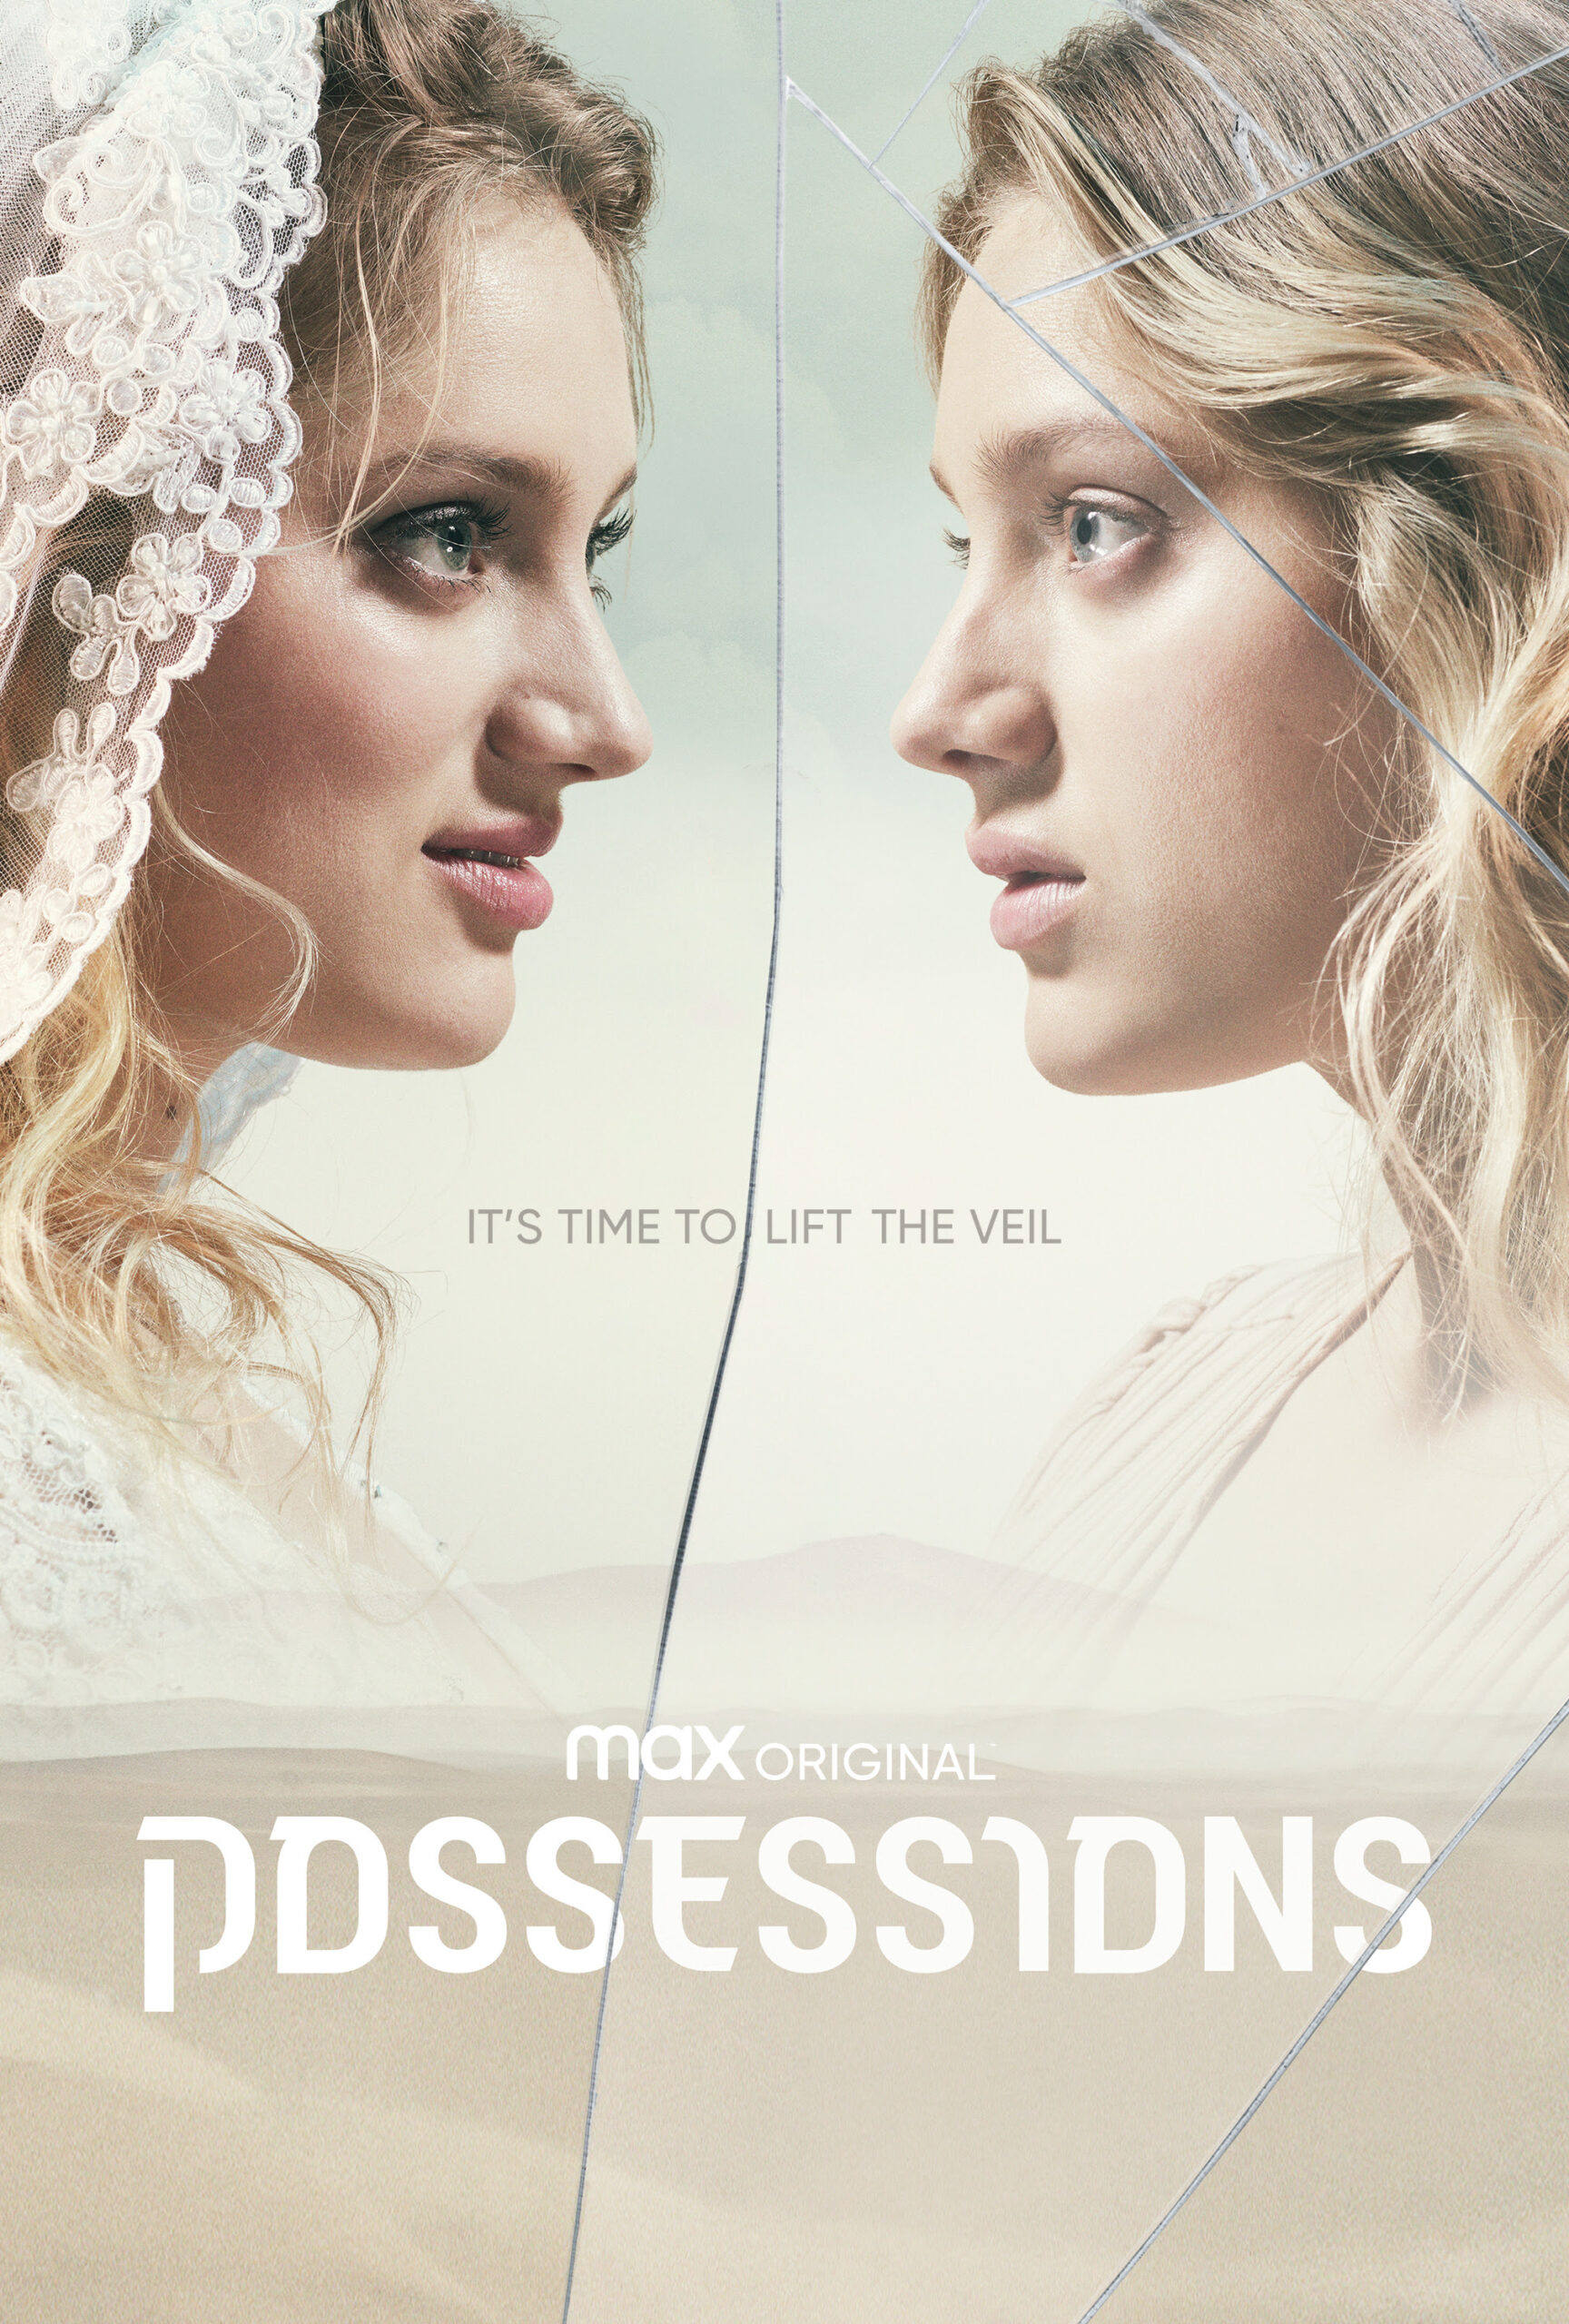 [News] French-Hebrew Thriller POSSESSIONS to Debut on HBOMax